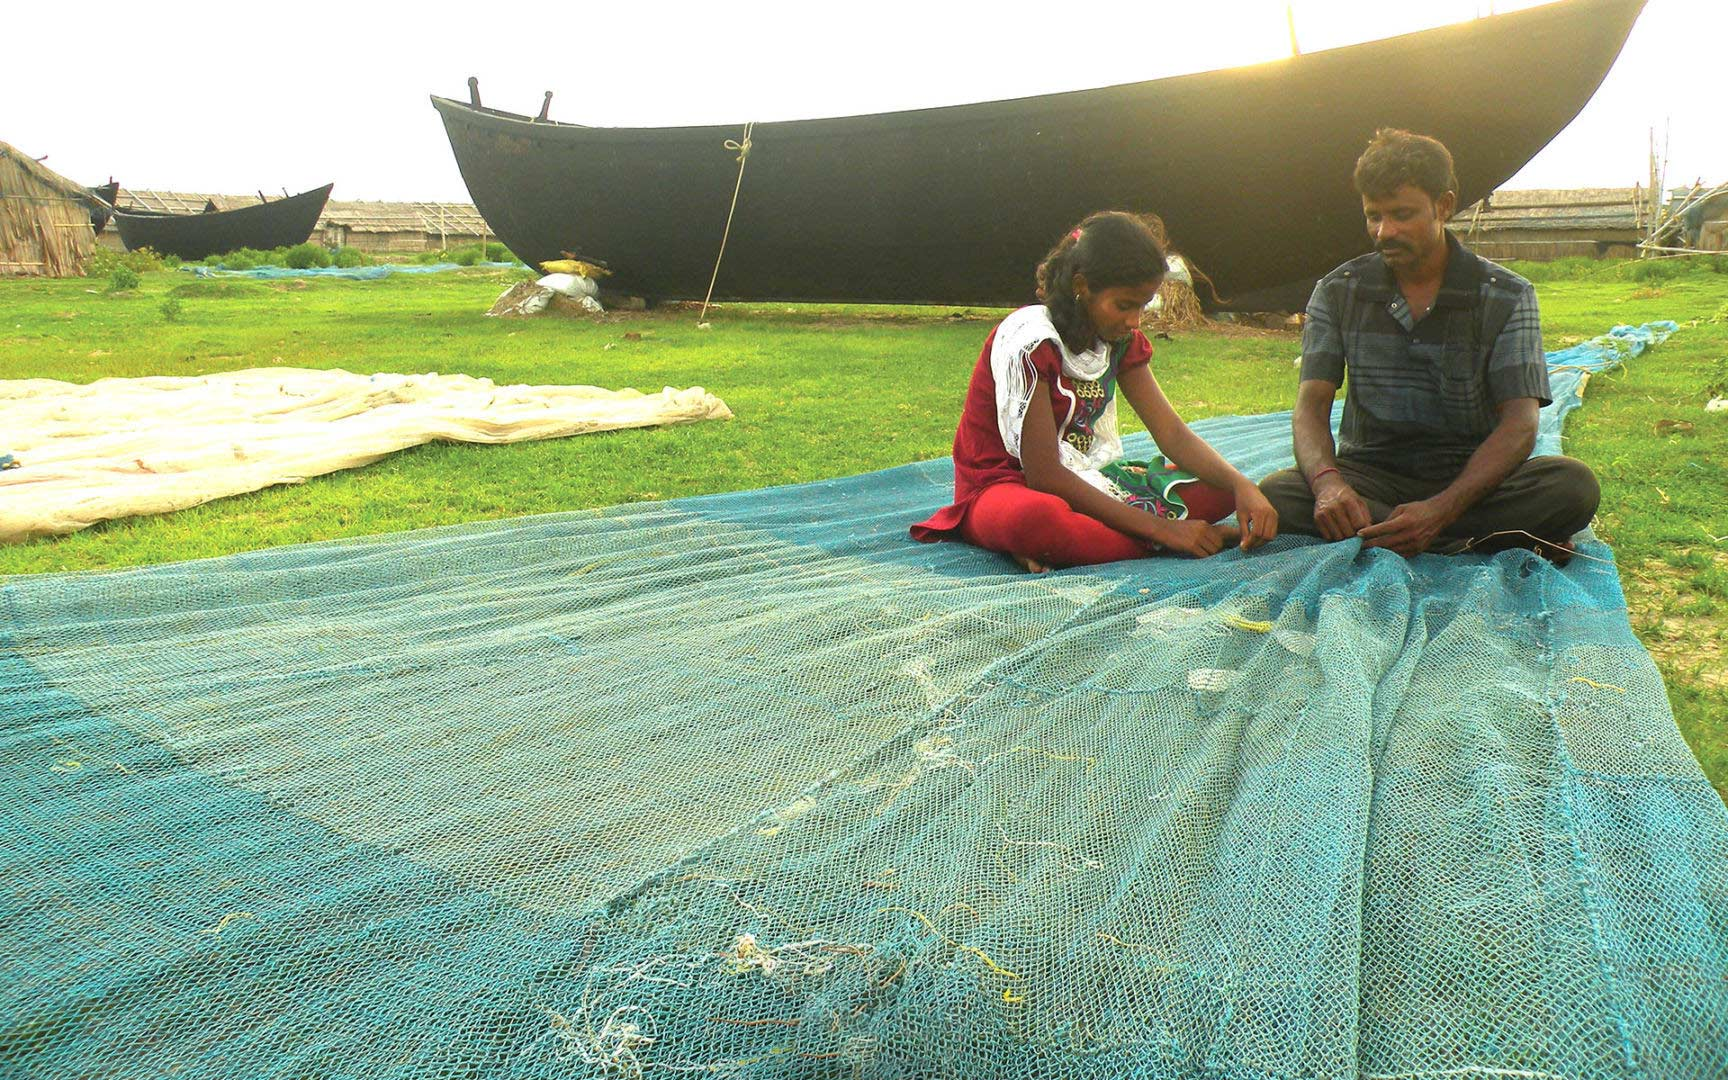 A girl helps her father mend a fishing net in eastern India